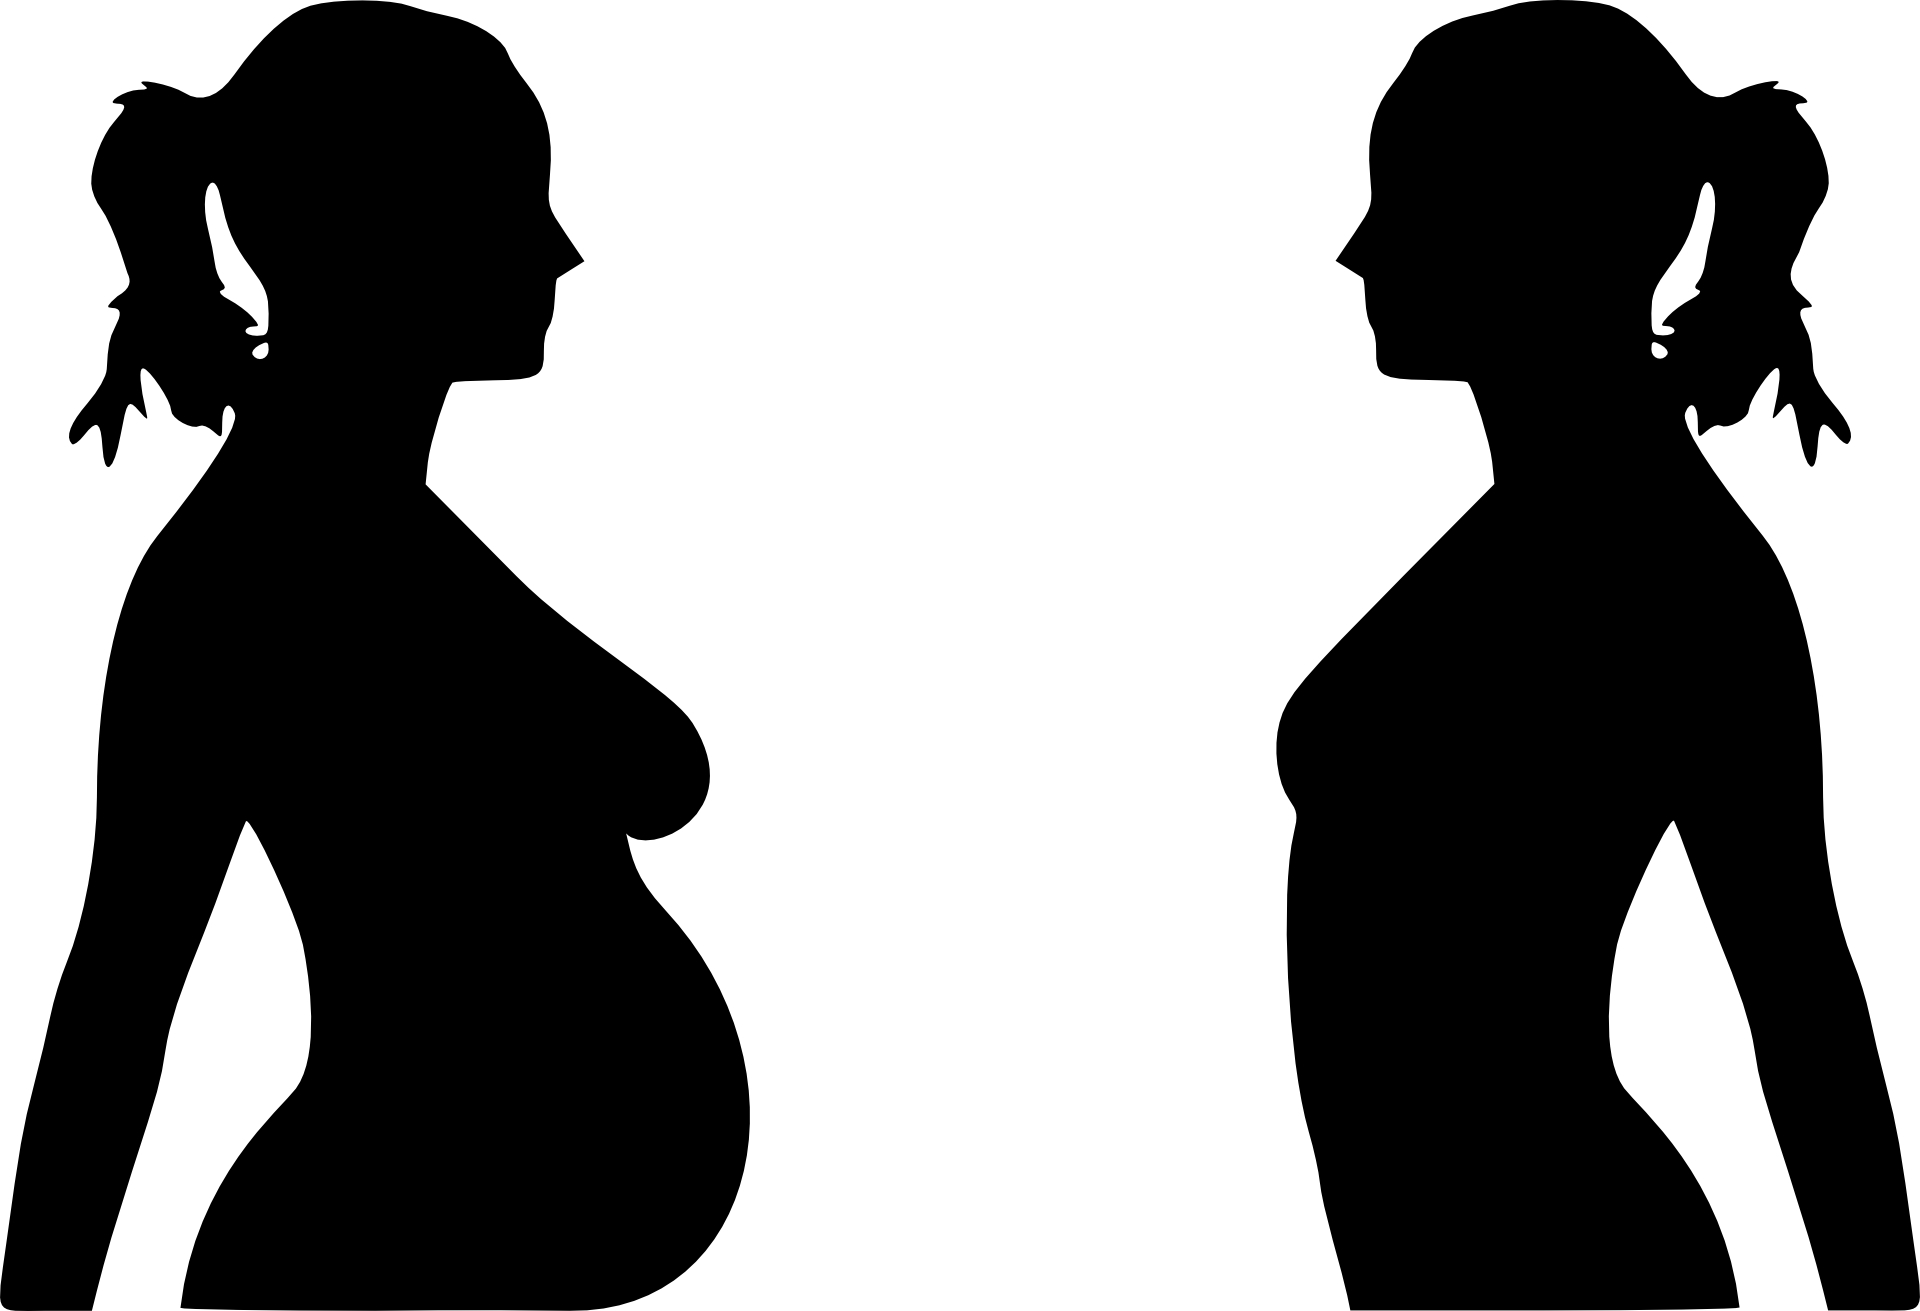 Free Silhouette Of Pregnant Woman Clipart, Download Free.